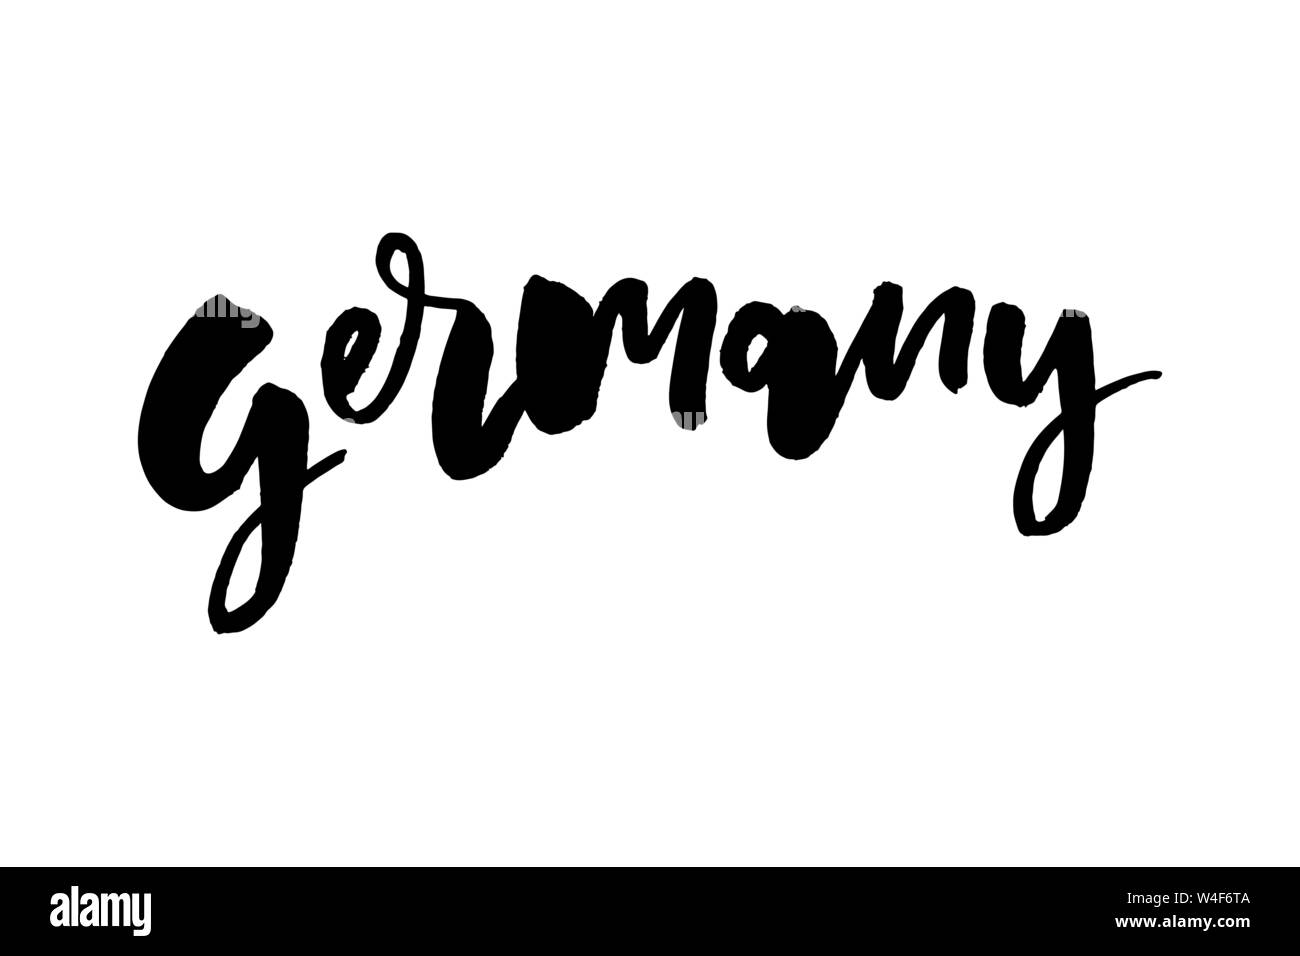 Script Text Word Art Lettering Design Vector Of Country Name